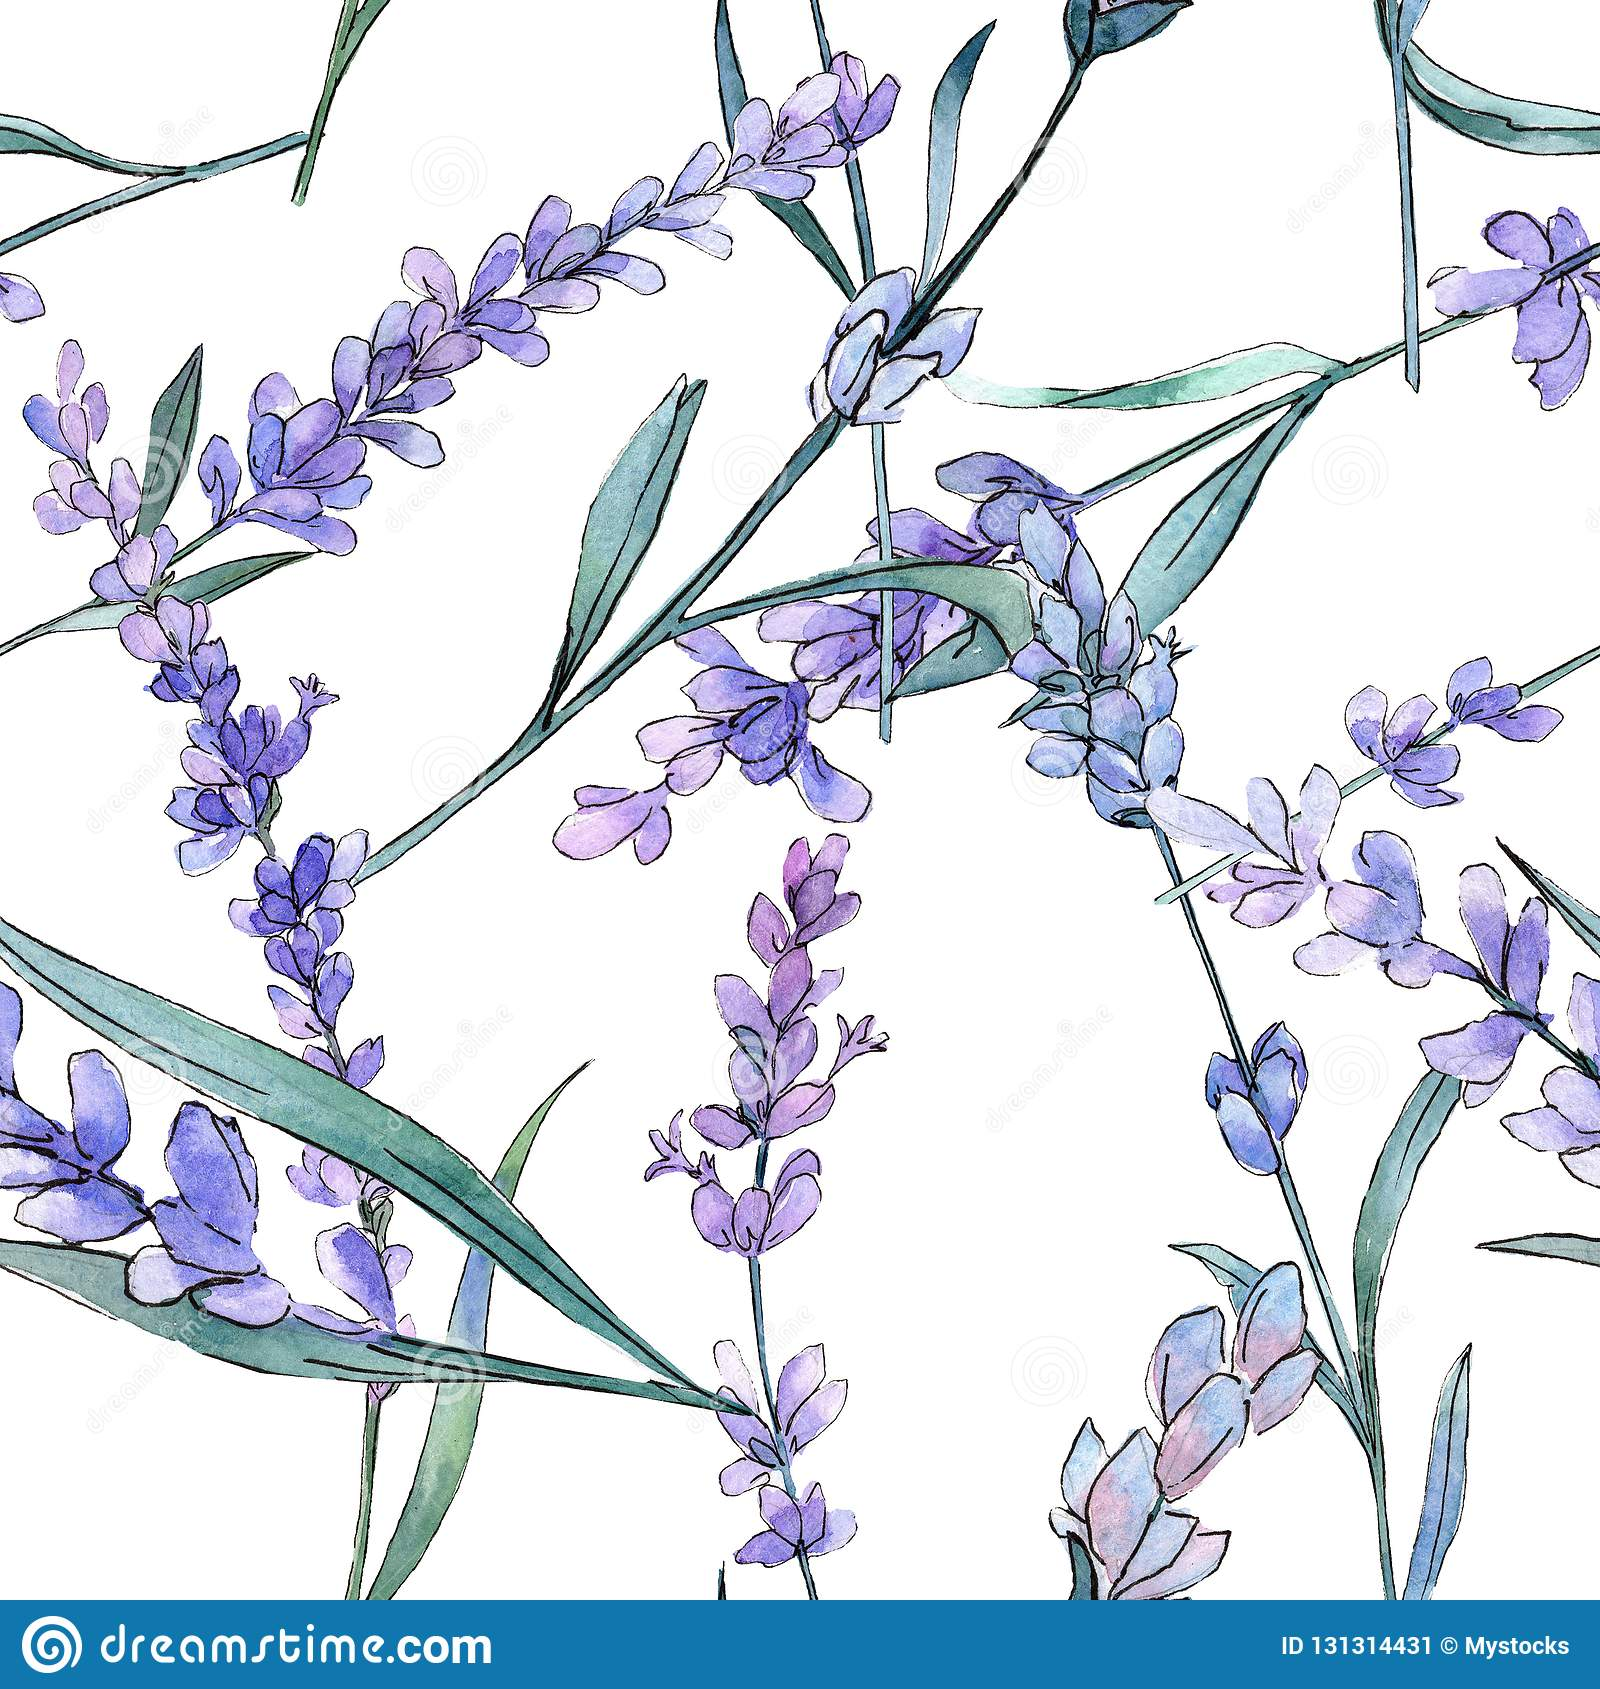 Purple lavender. Floral botanical flower. Watercolor background illustration set. Seamless background pattern.